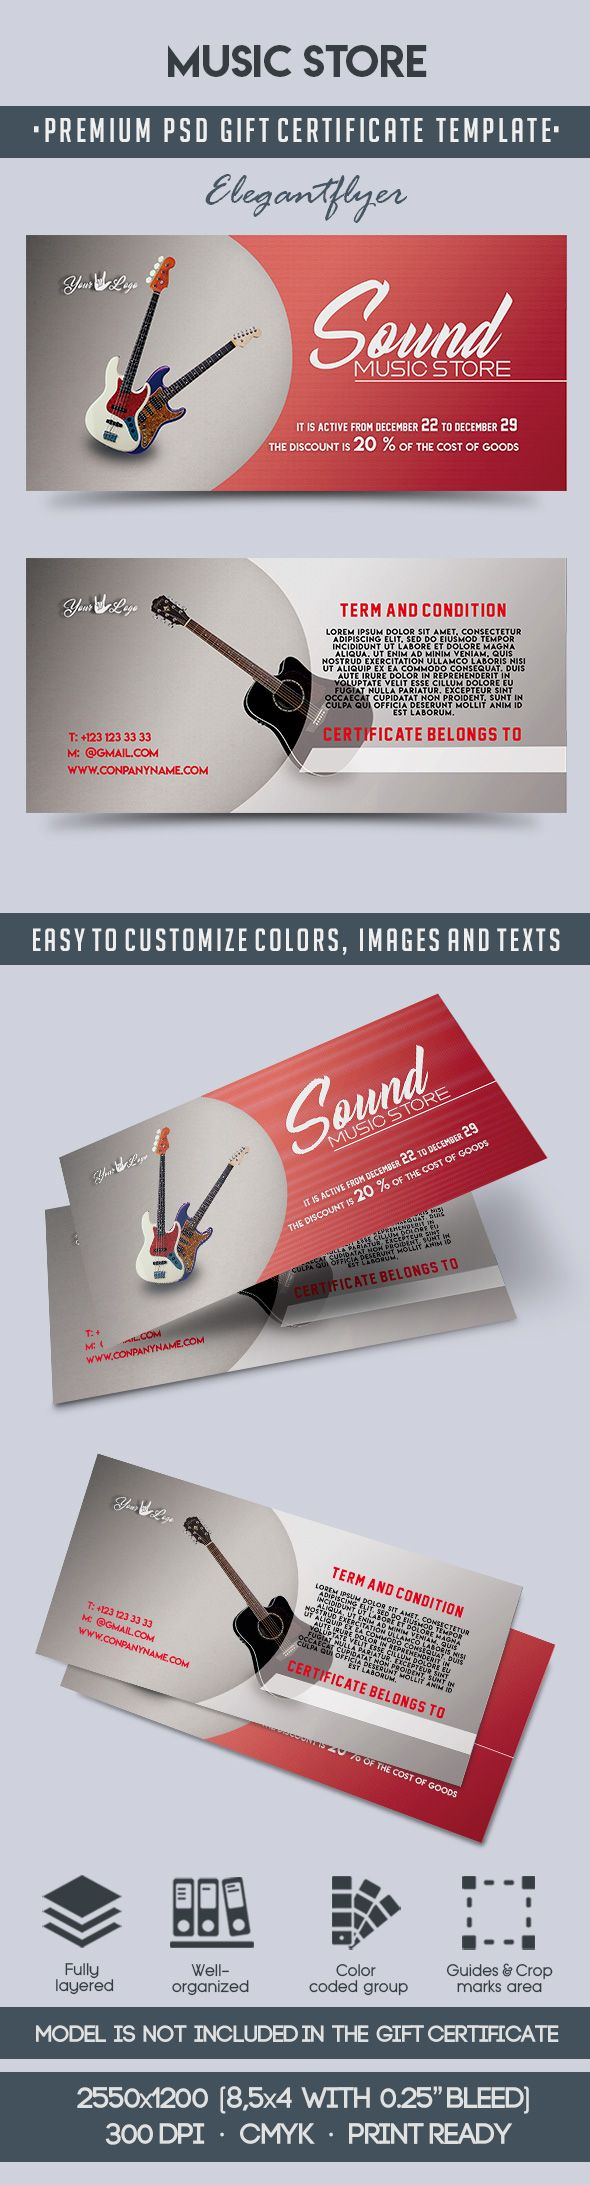 27 images of concert ticket gift certificate template infovia net